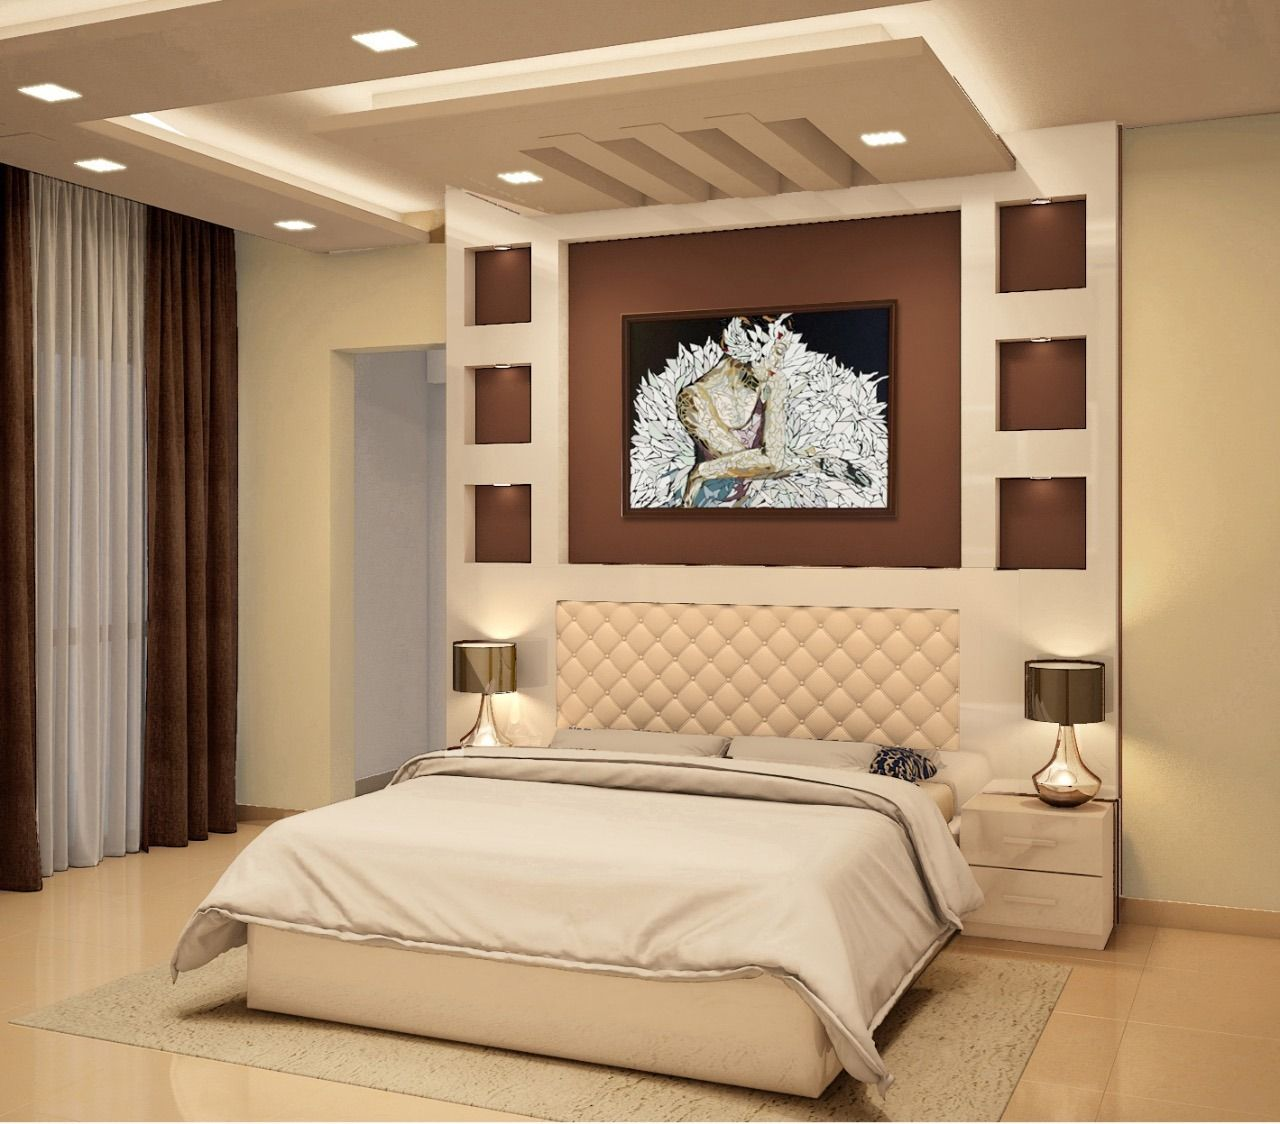 Pin by mohdwe on Bedrooms | Bedroom false ceiling design ...